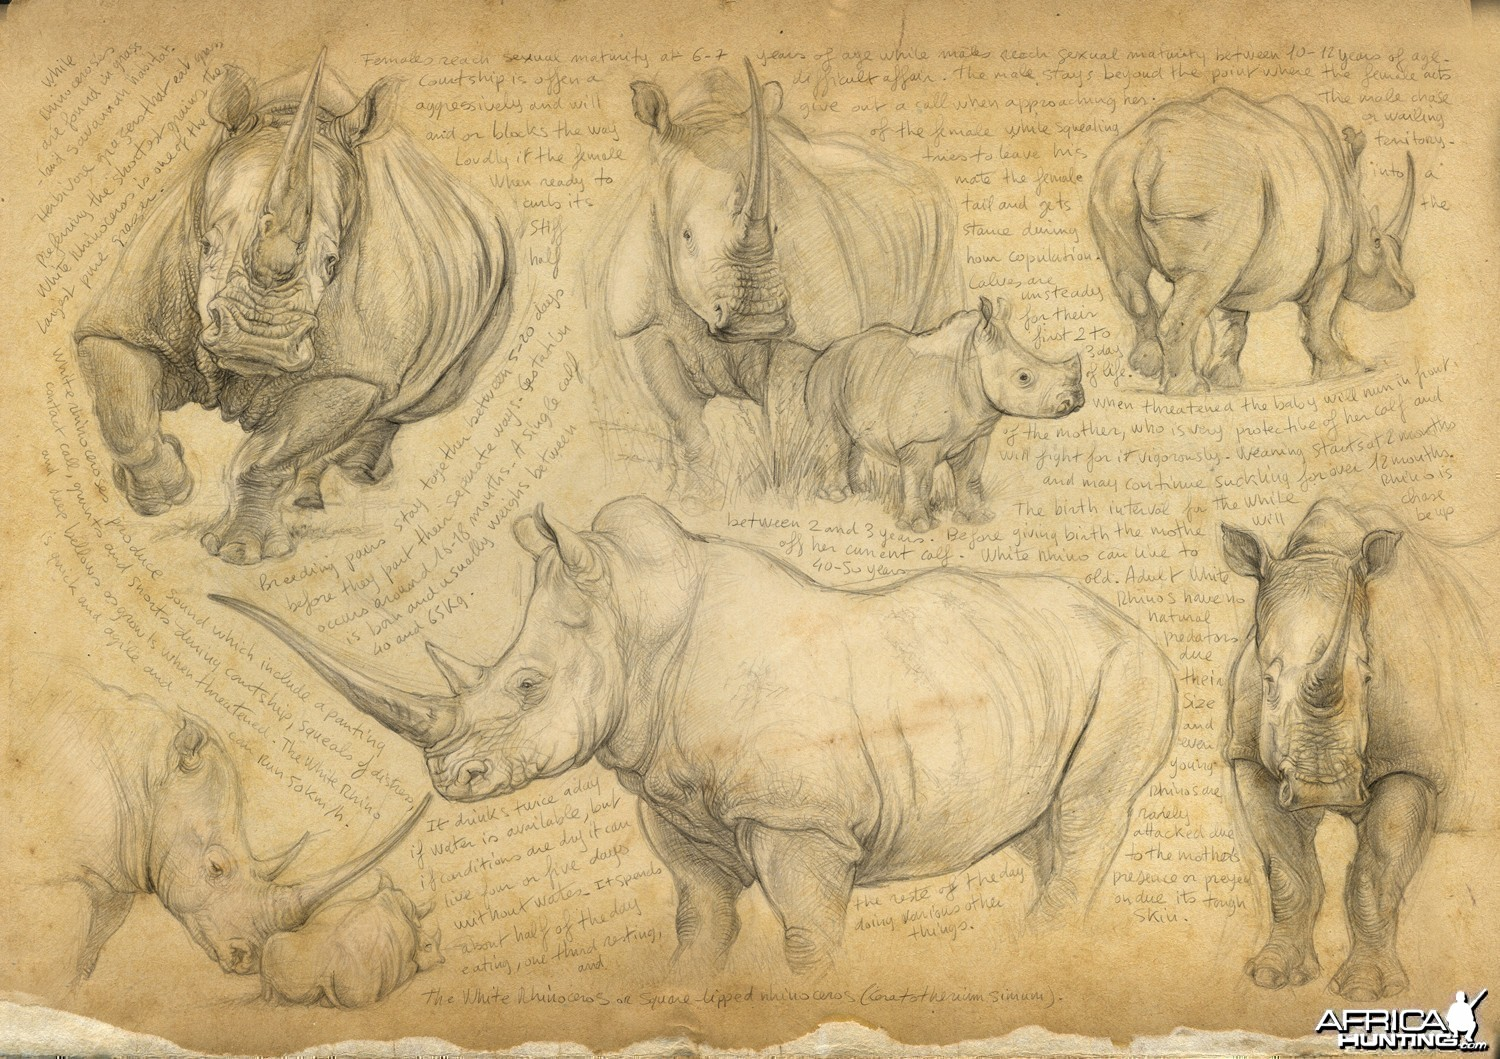 Wildlife Artist Marcello Pettineo - White Rhino